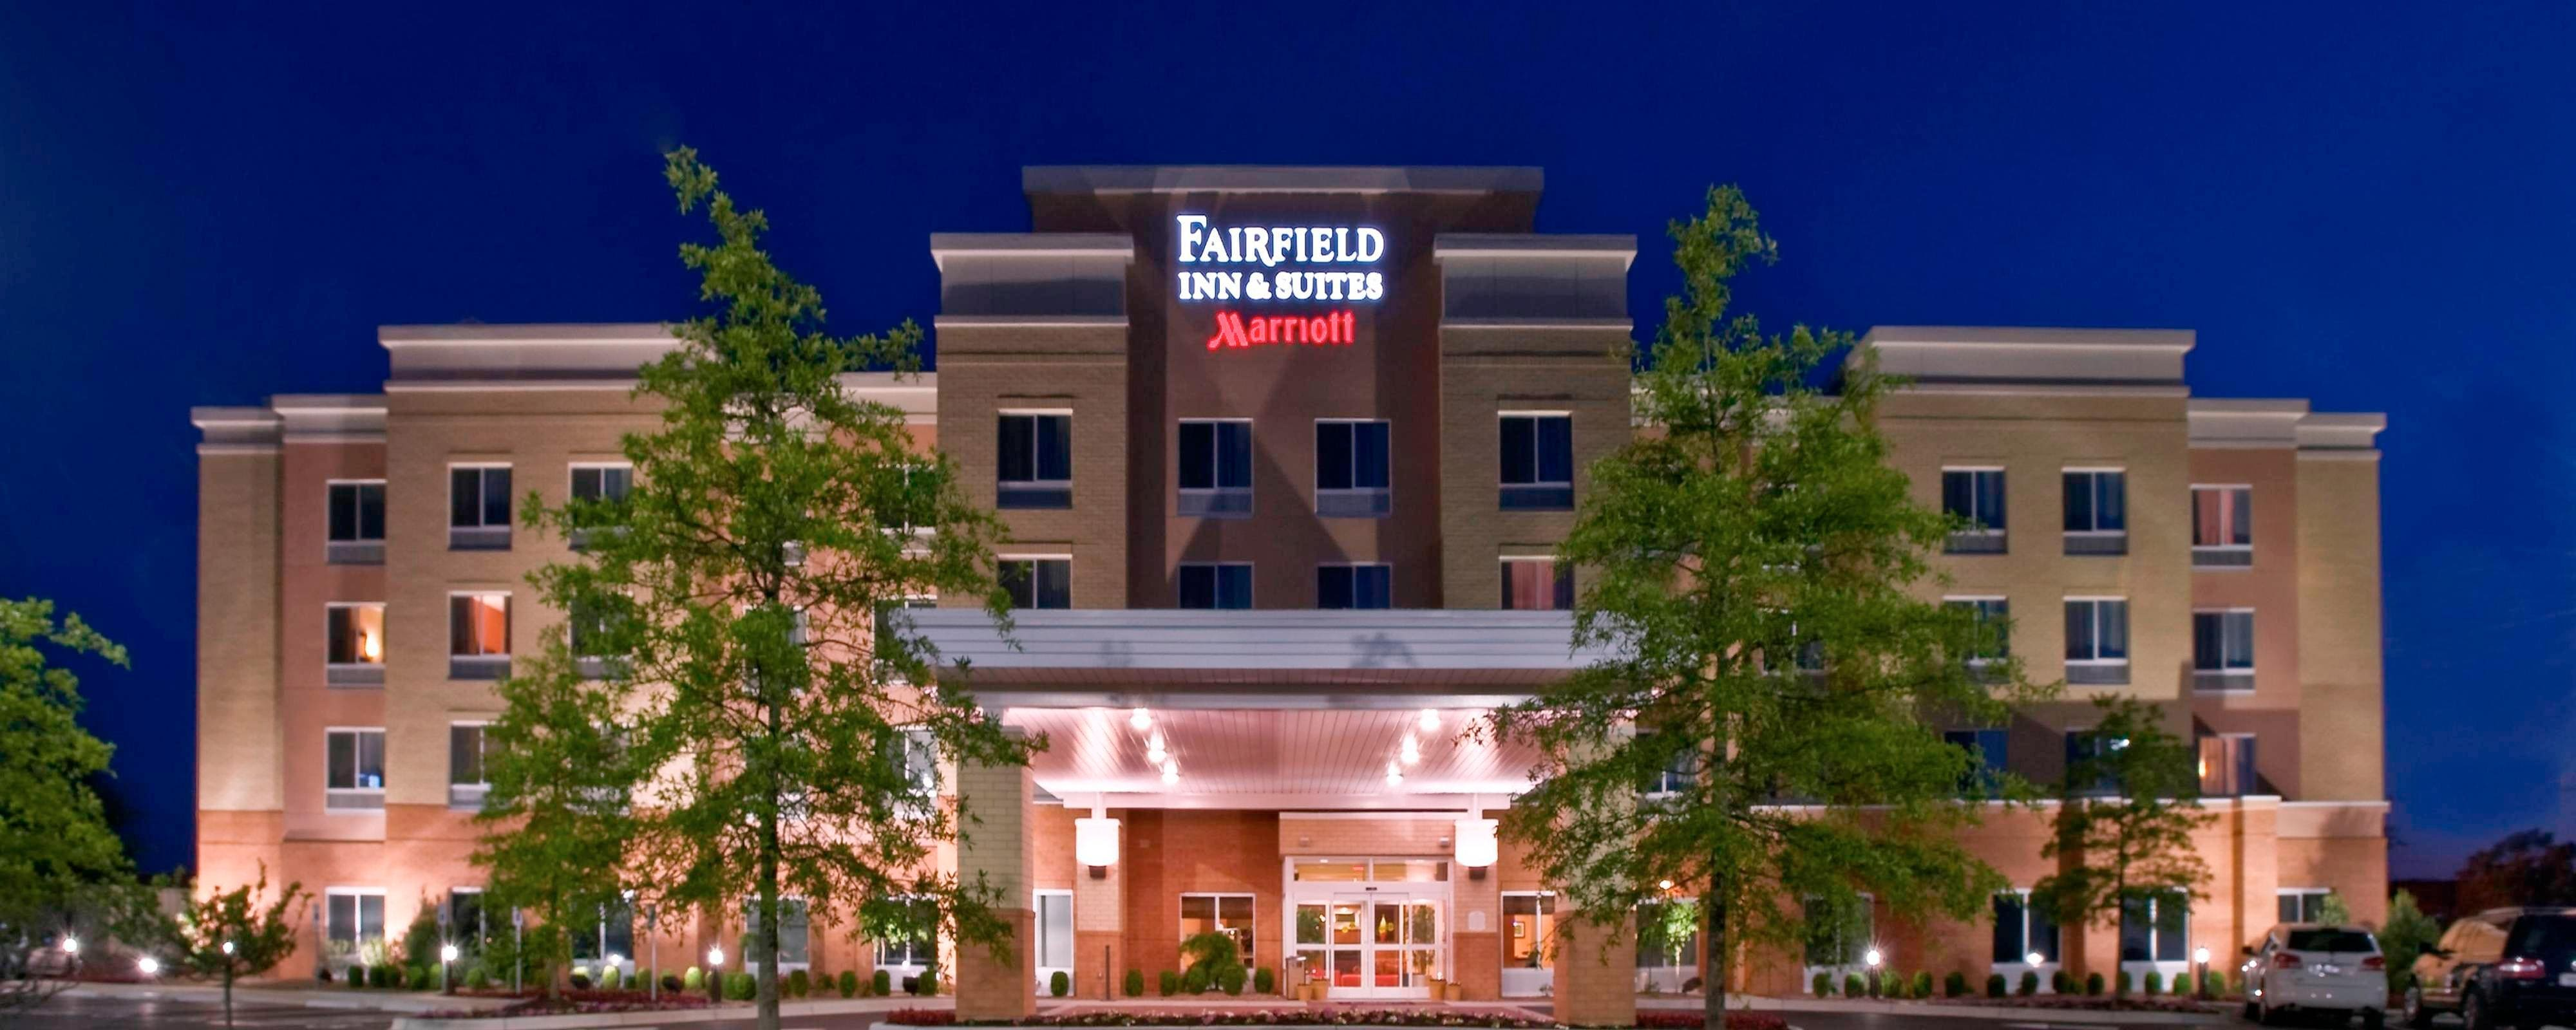 Fairfield Inn & Suites Louisville Exterior